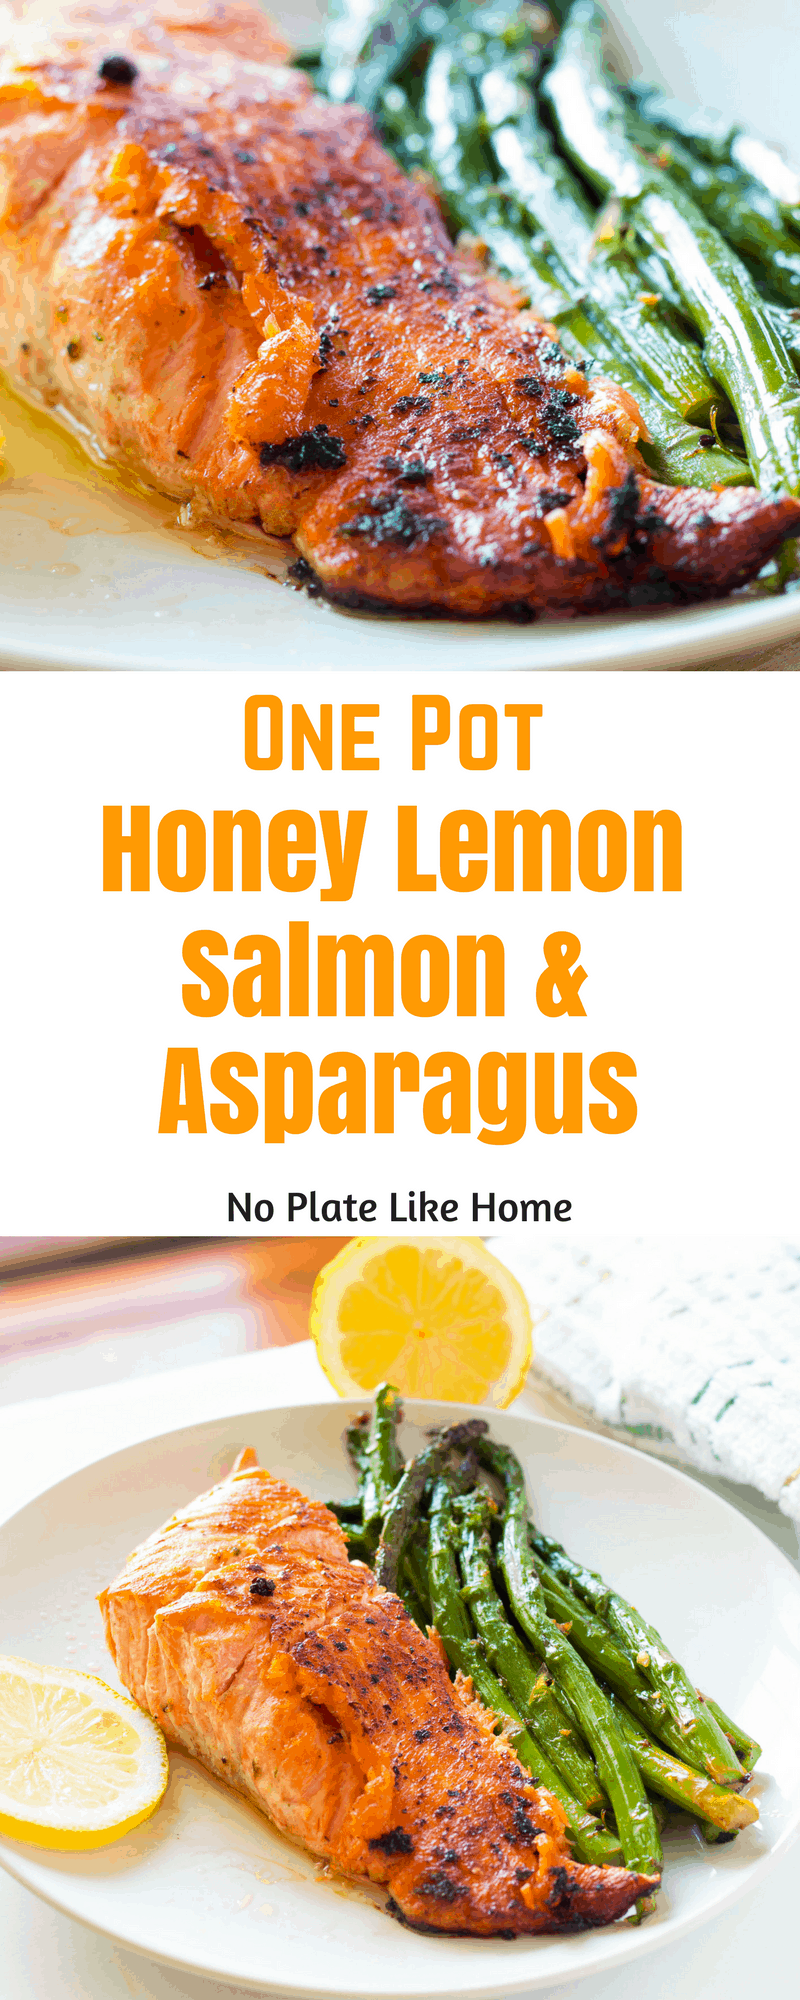 An easy, nutritious tasty one pot weeknight dinner with little prep and clean up! This tasty One Pot Honey Lemon Salmon with Asparagus is ready in 25 min!